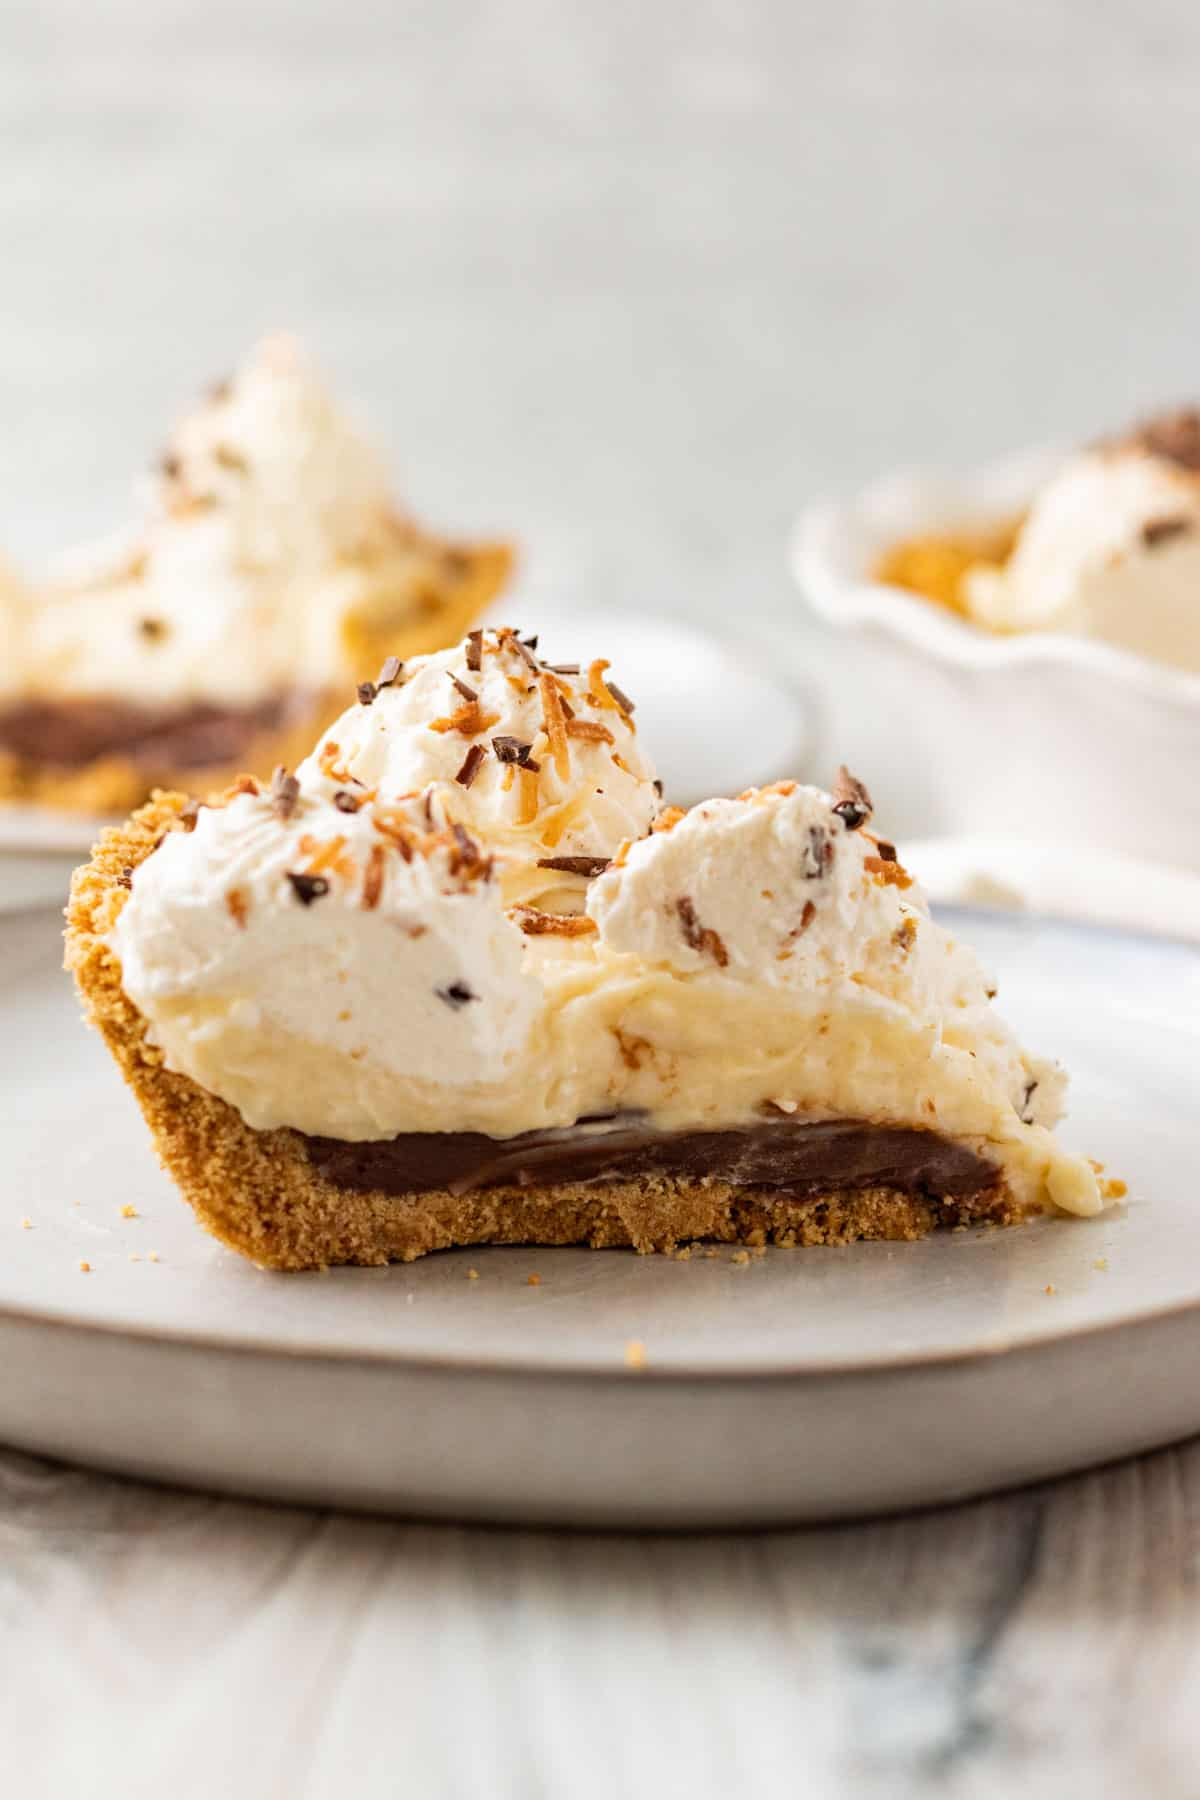 slice of chocolate coconut cream pie with whipped cream on a gray plate with another slice in background